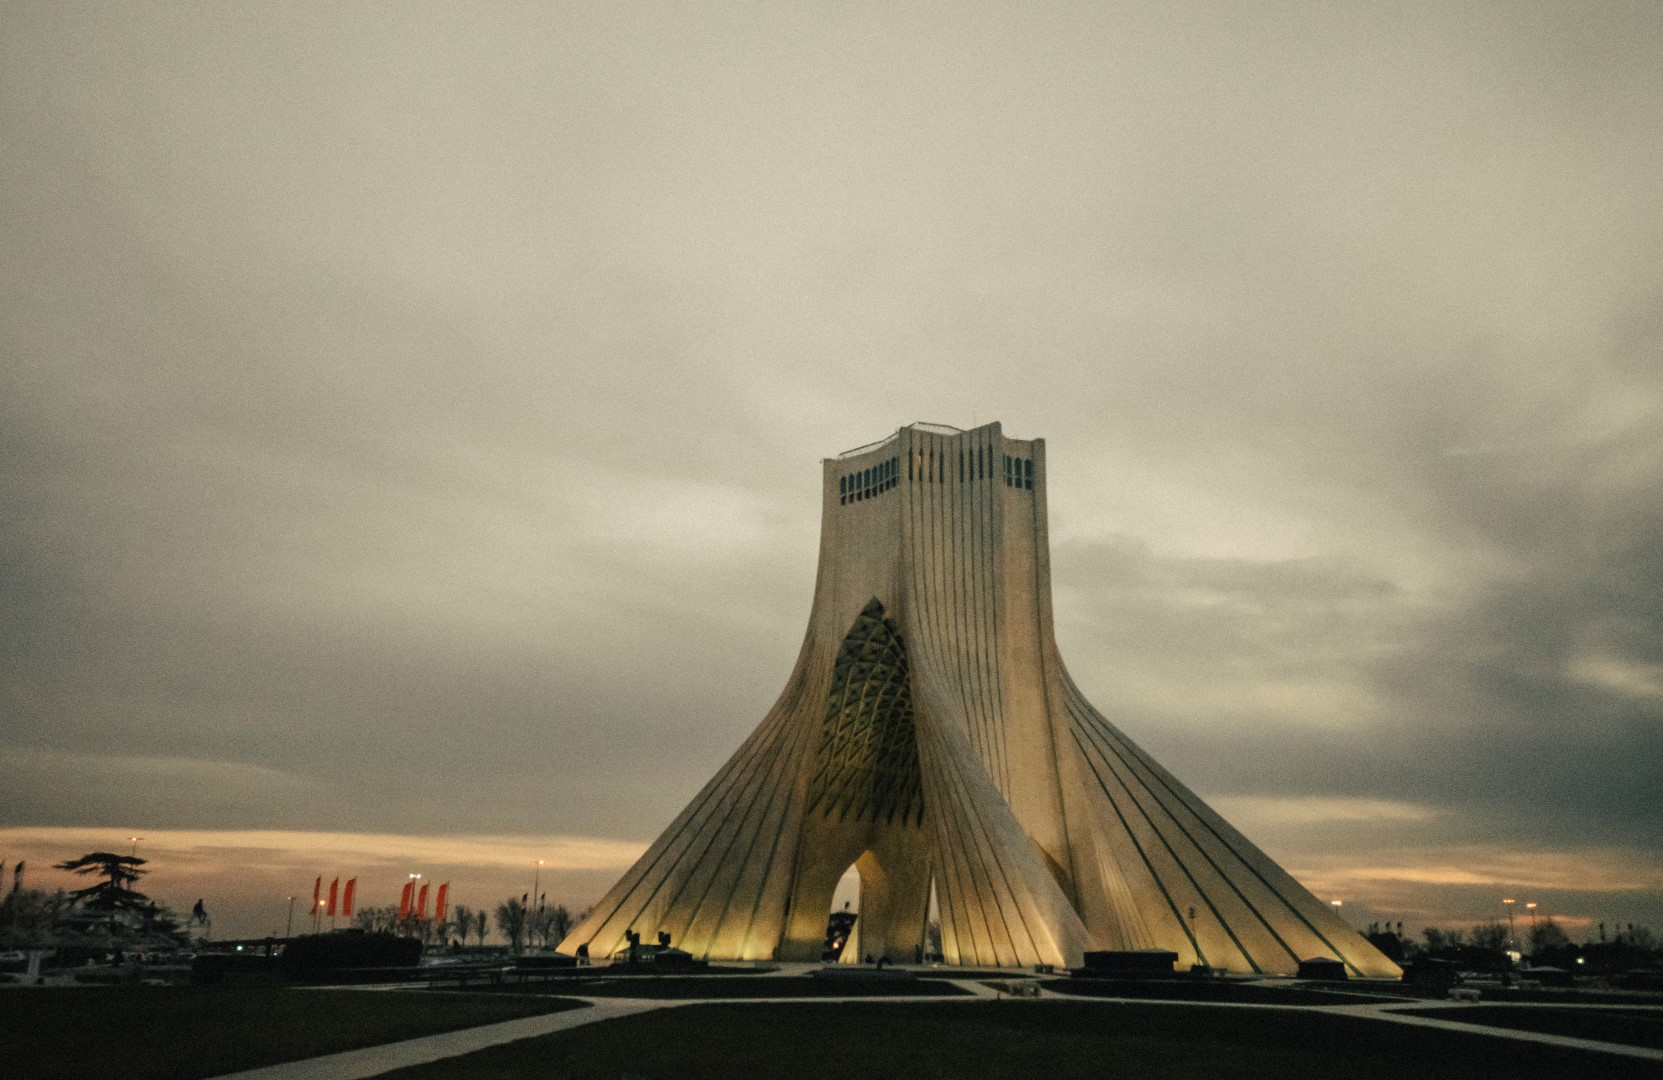 Time to forget about What people say,  Remember what you seen.  Let's go IRAN.